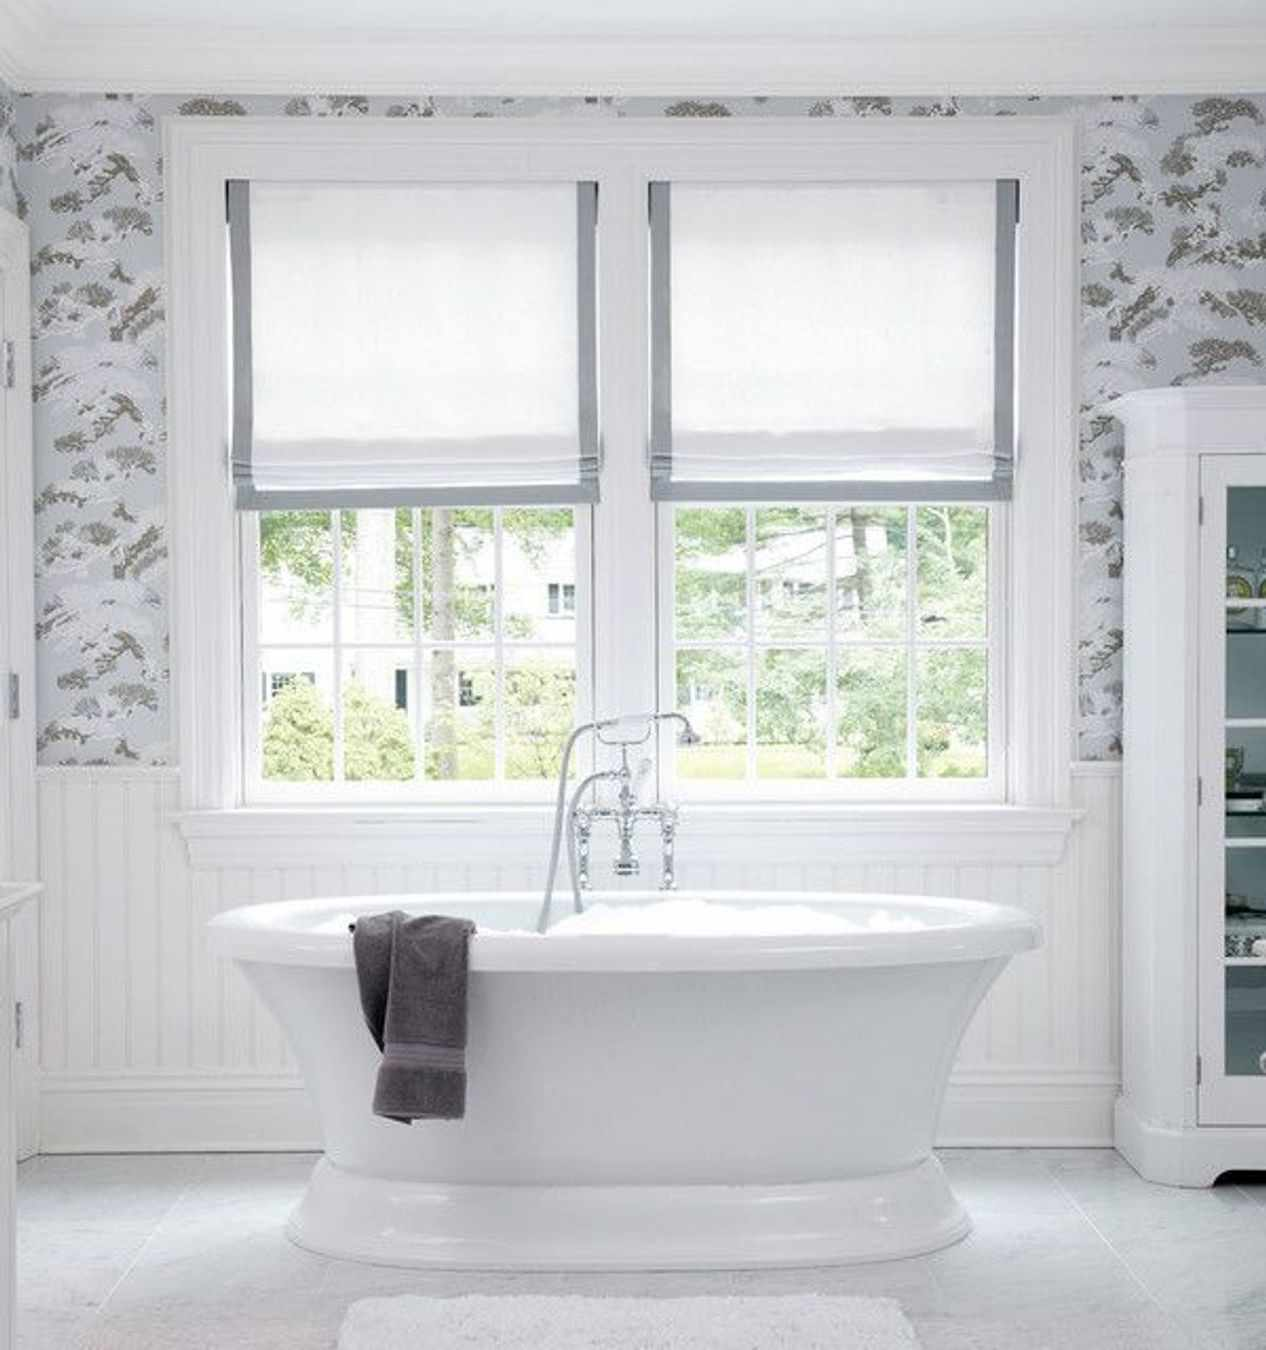 Window bathroom